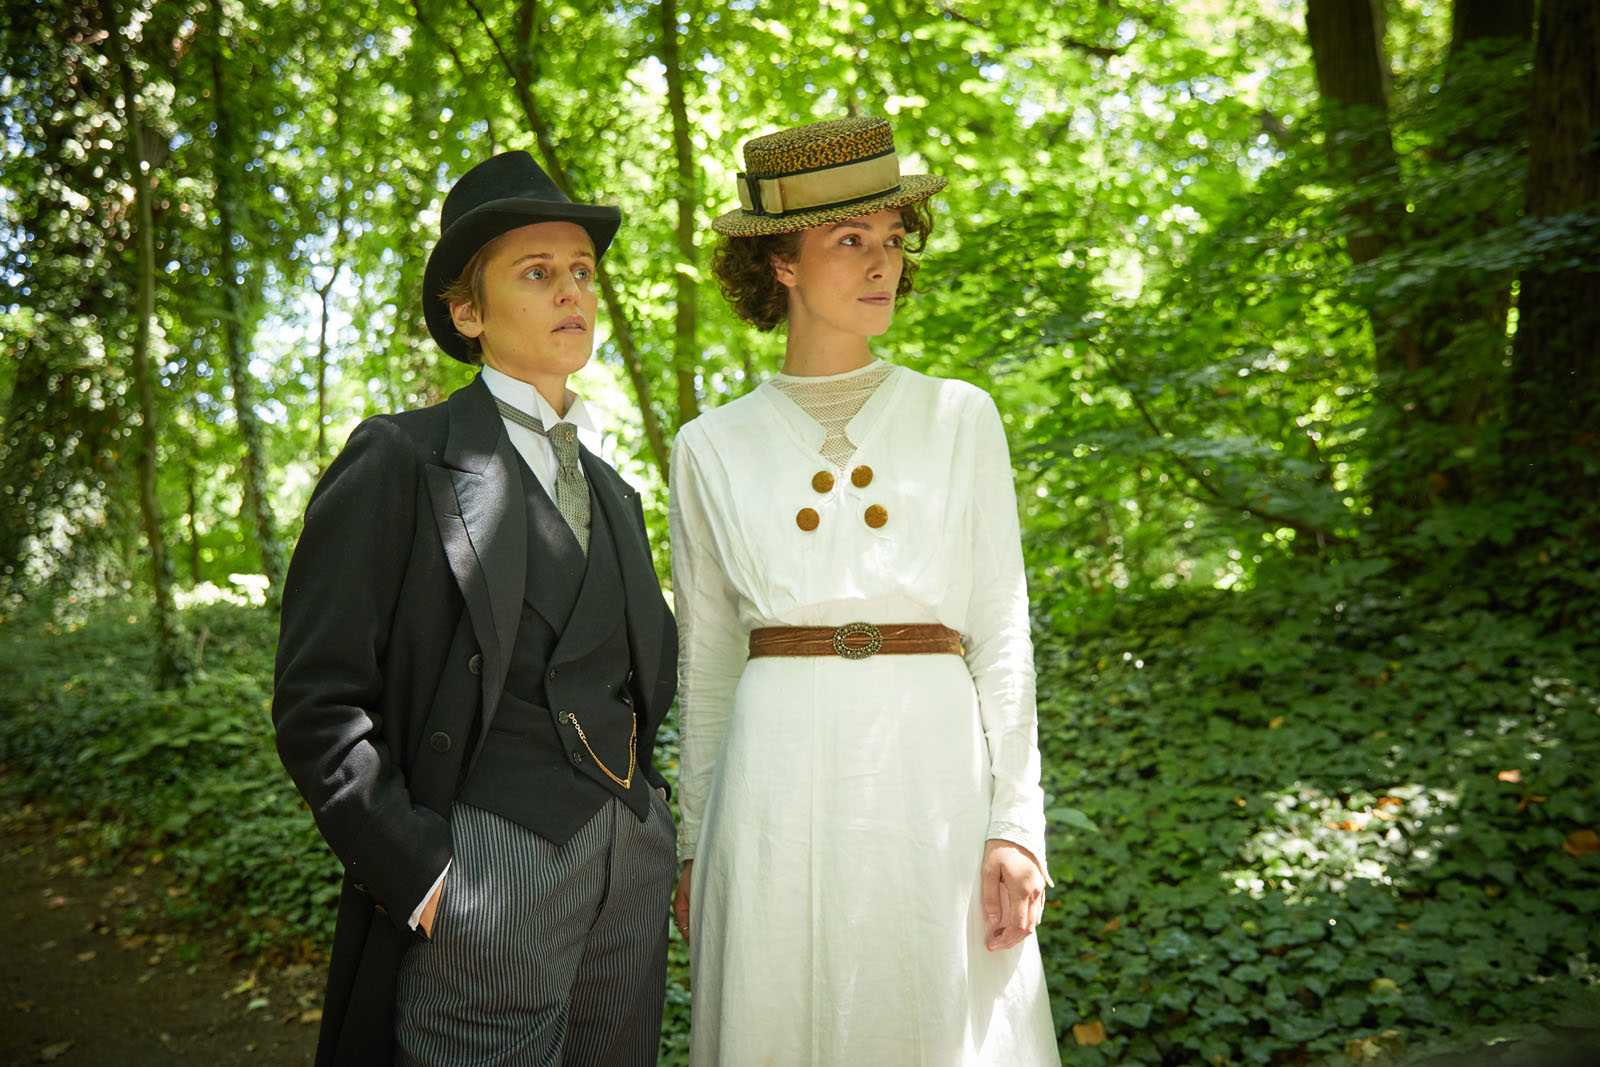 Colette critique photo avis cinema film Keira Knightley denise Gough